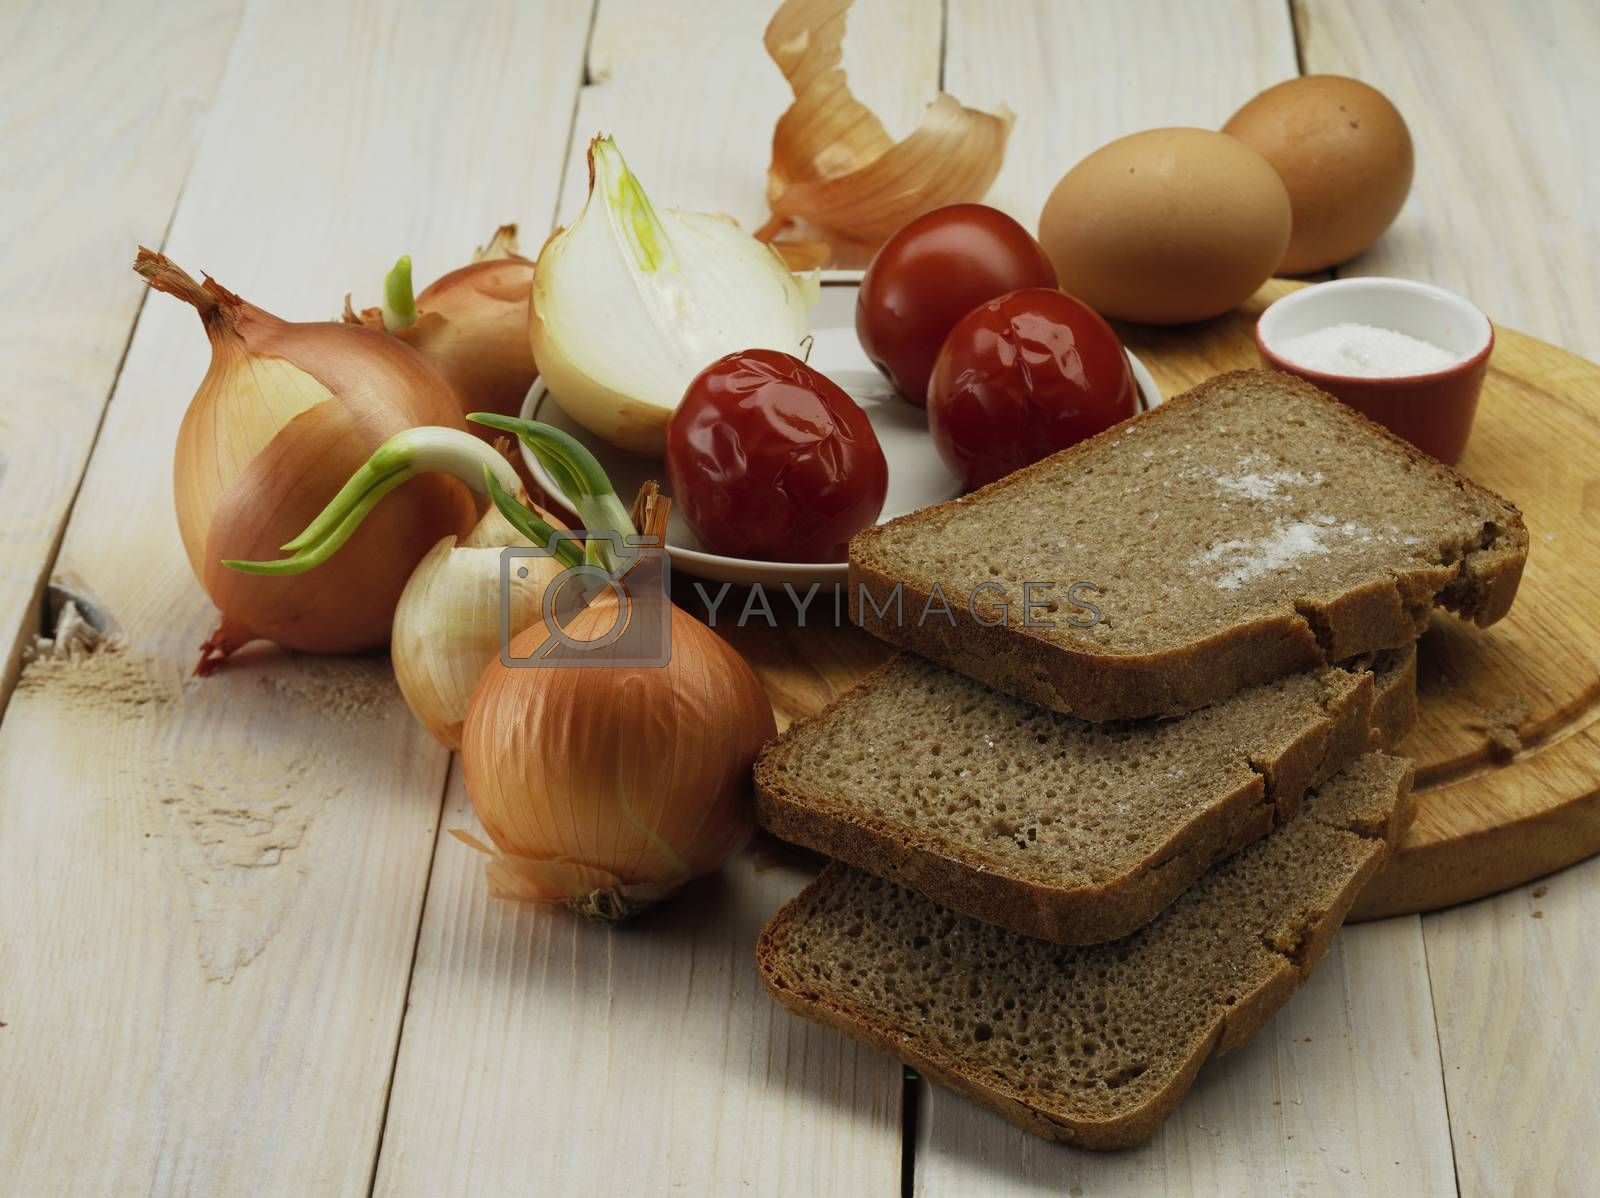 root of onion and bread on wooden board